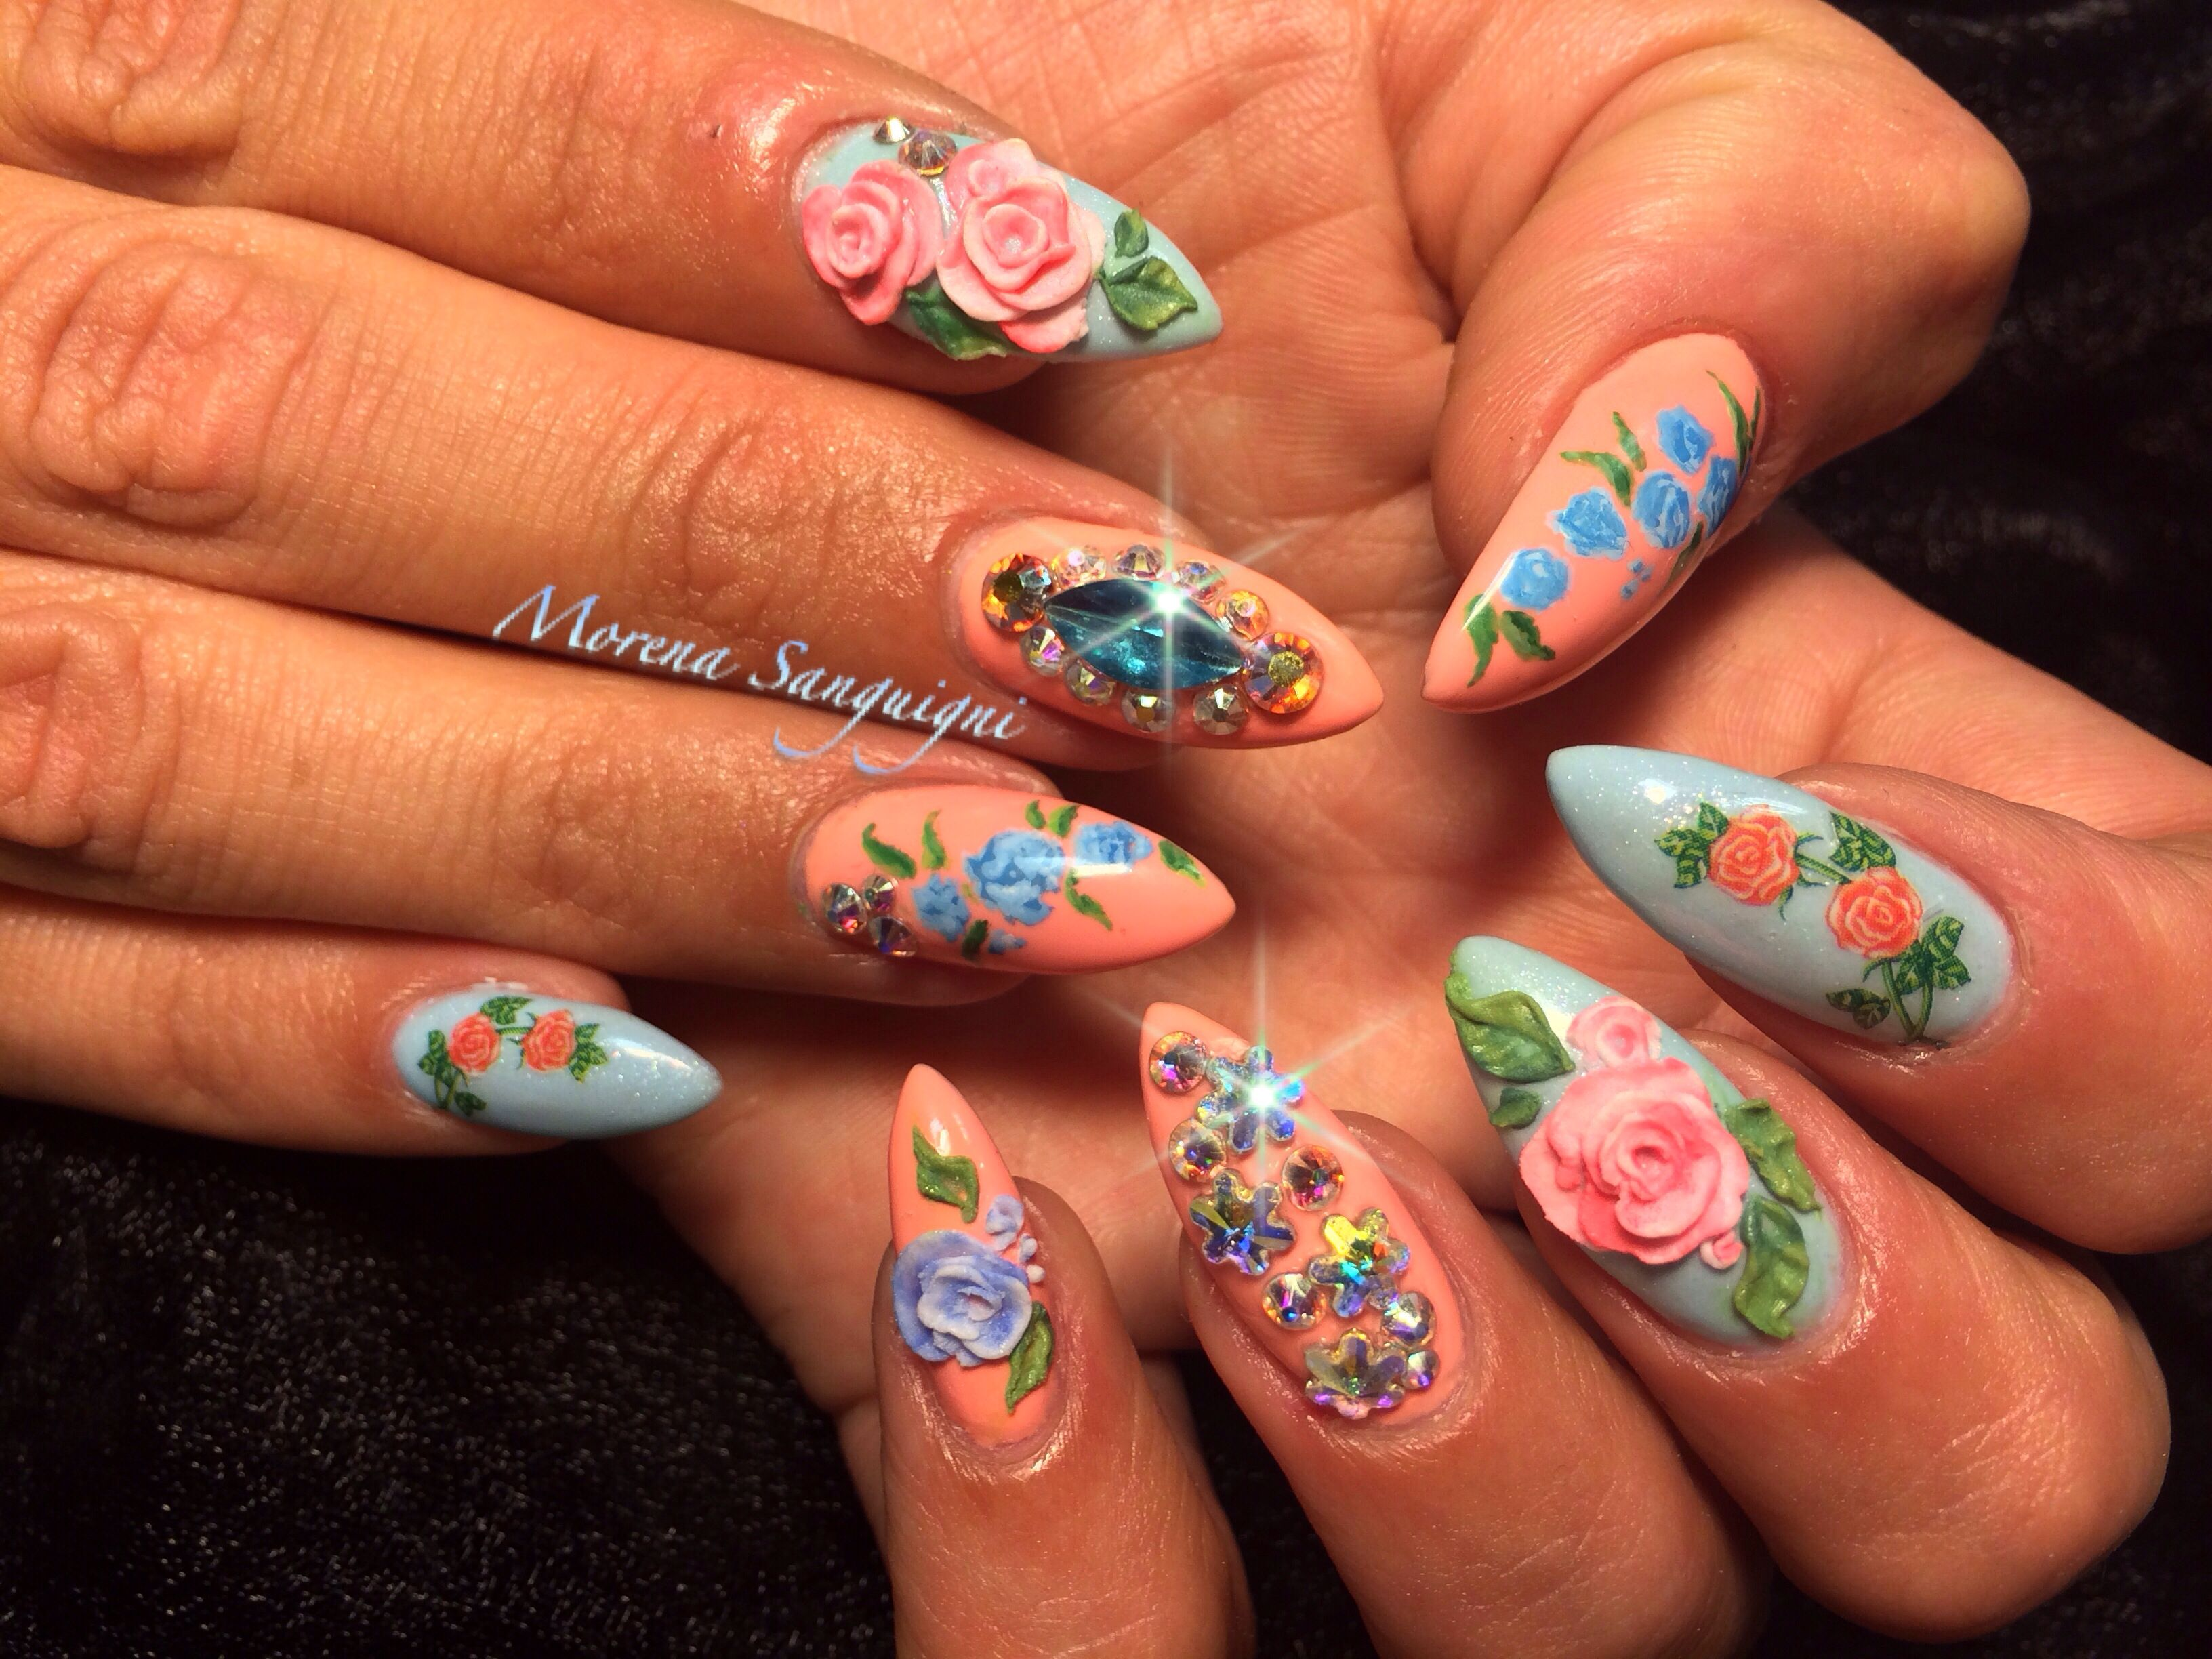 Acrylic nails with hand painted nail Art roses peach baby ...